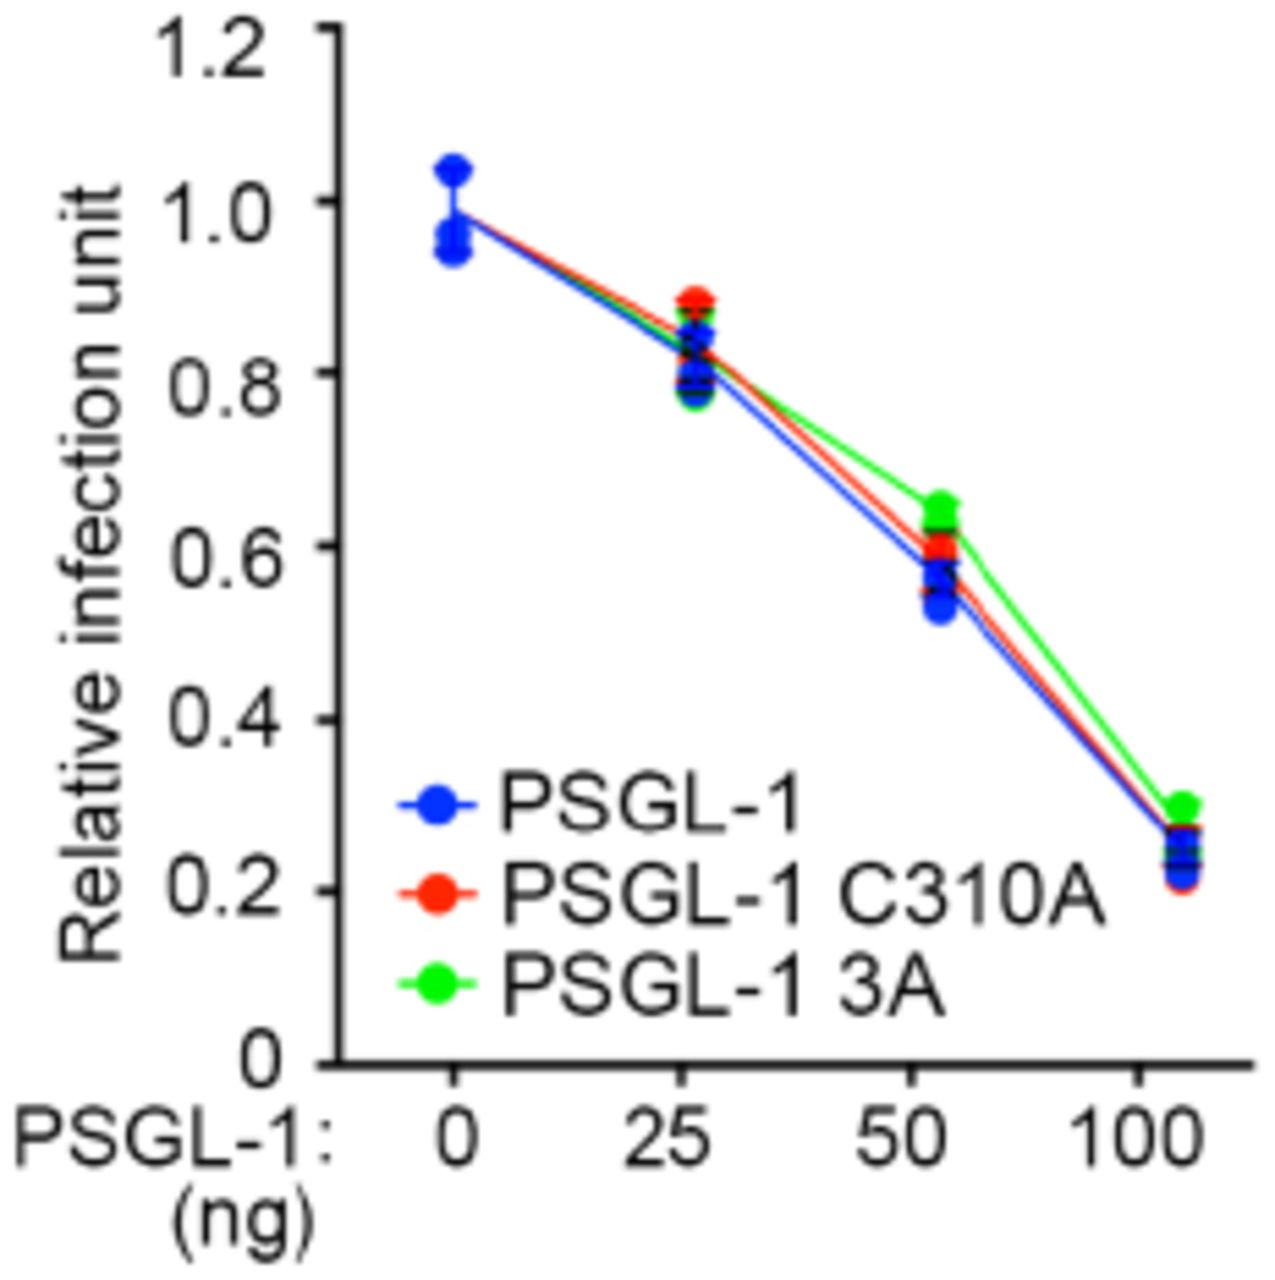 PSGL-1's dimerization-deficient mutation and gap co-clustering-deficient mutations have no effect on its anti-viral activity. a , TZM-bl cells were infected with virions harvested from 293T cells transfected with pNL4-3 plasmids and different amounts of plasmids expressing PSGL-1 or PSGL-1 C336A mutant (dimerization-deficient), PSGL-1 3A mutant (gap co-clustering-deficient ) . The virions were normalized by p24 ELISA before the infection. The infection rates were quantitated with luciferase assays. N=3.